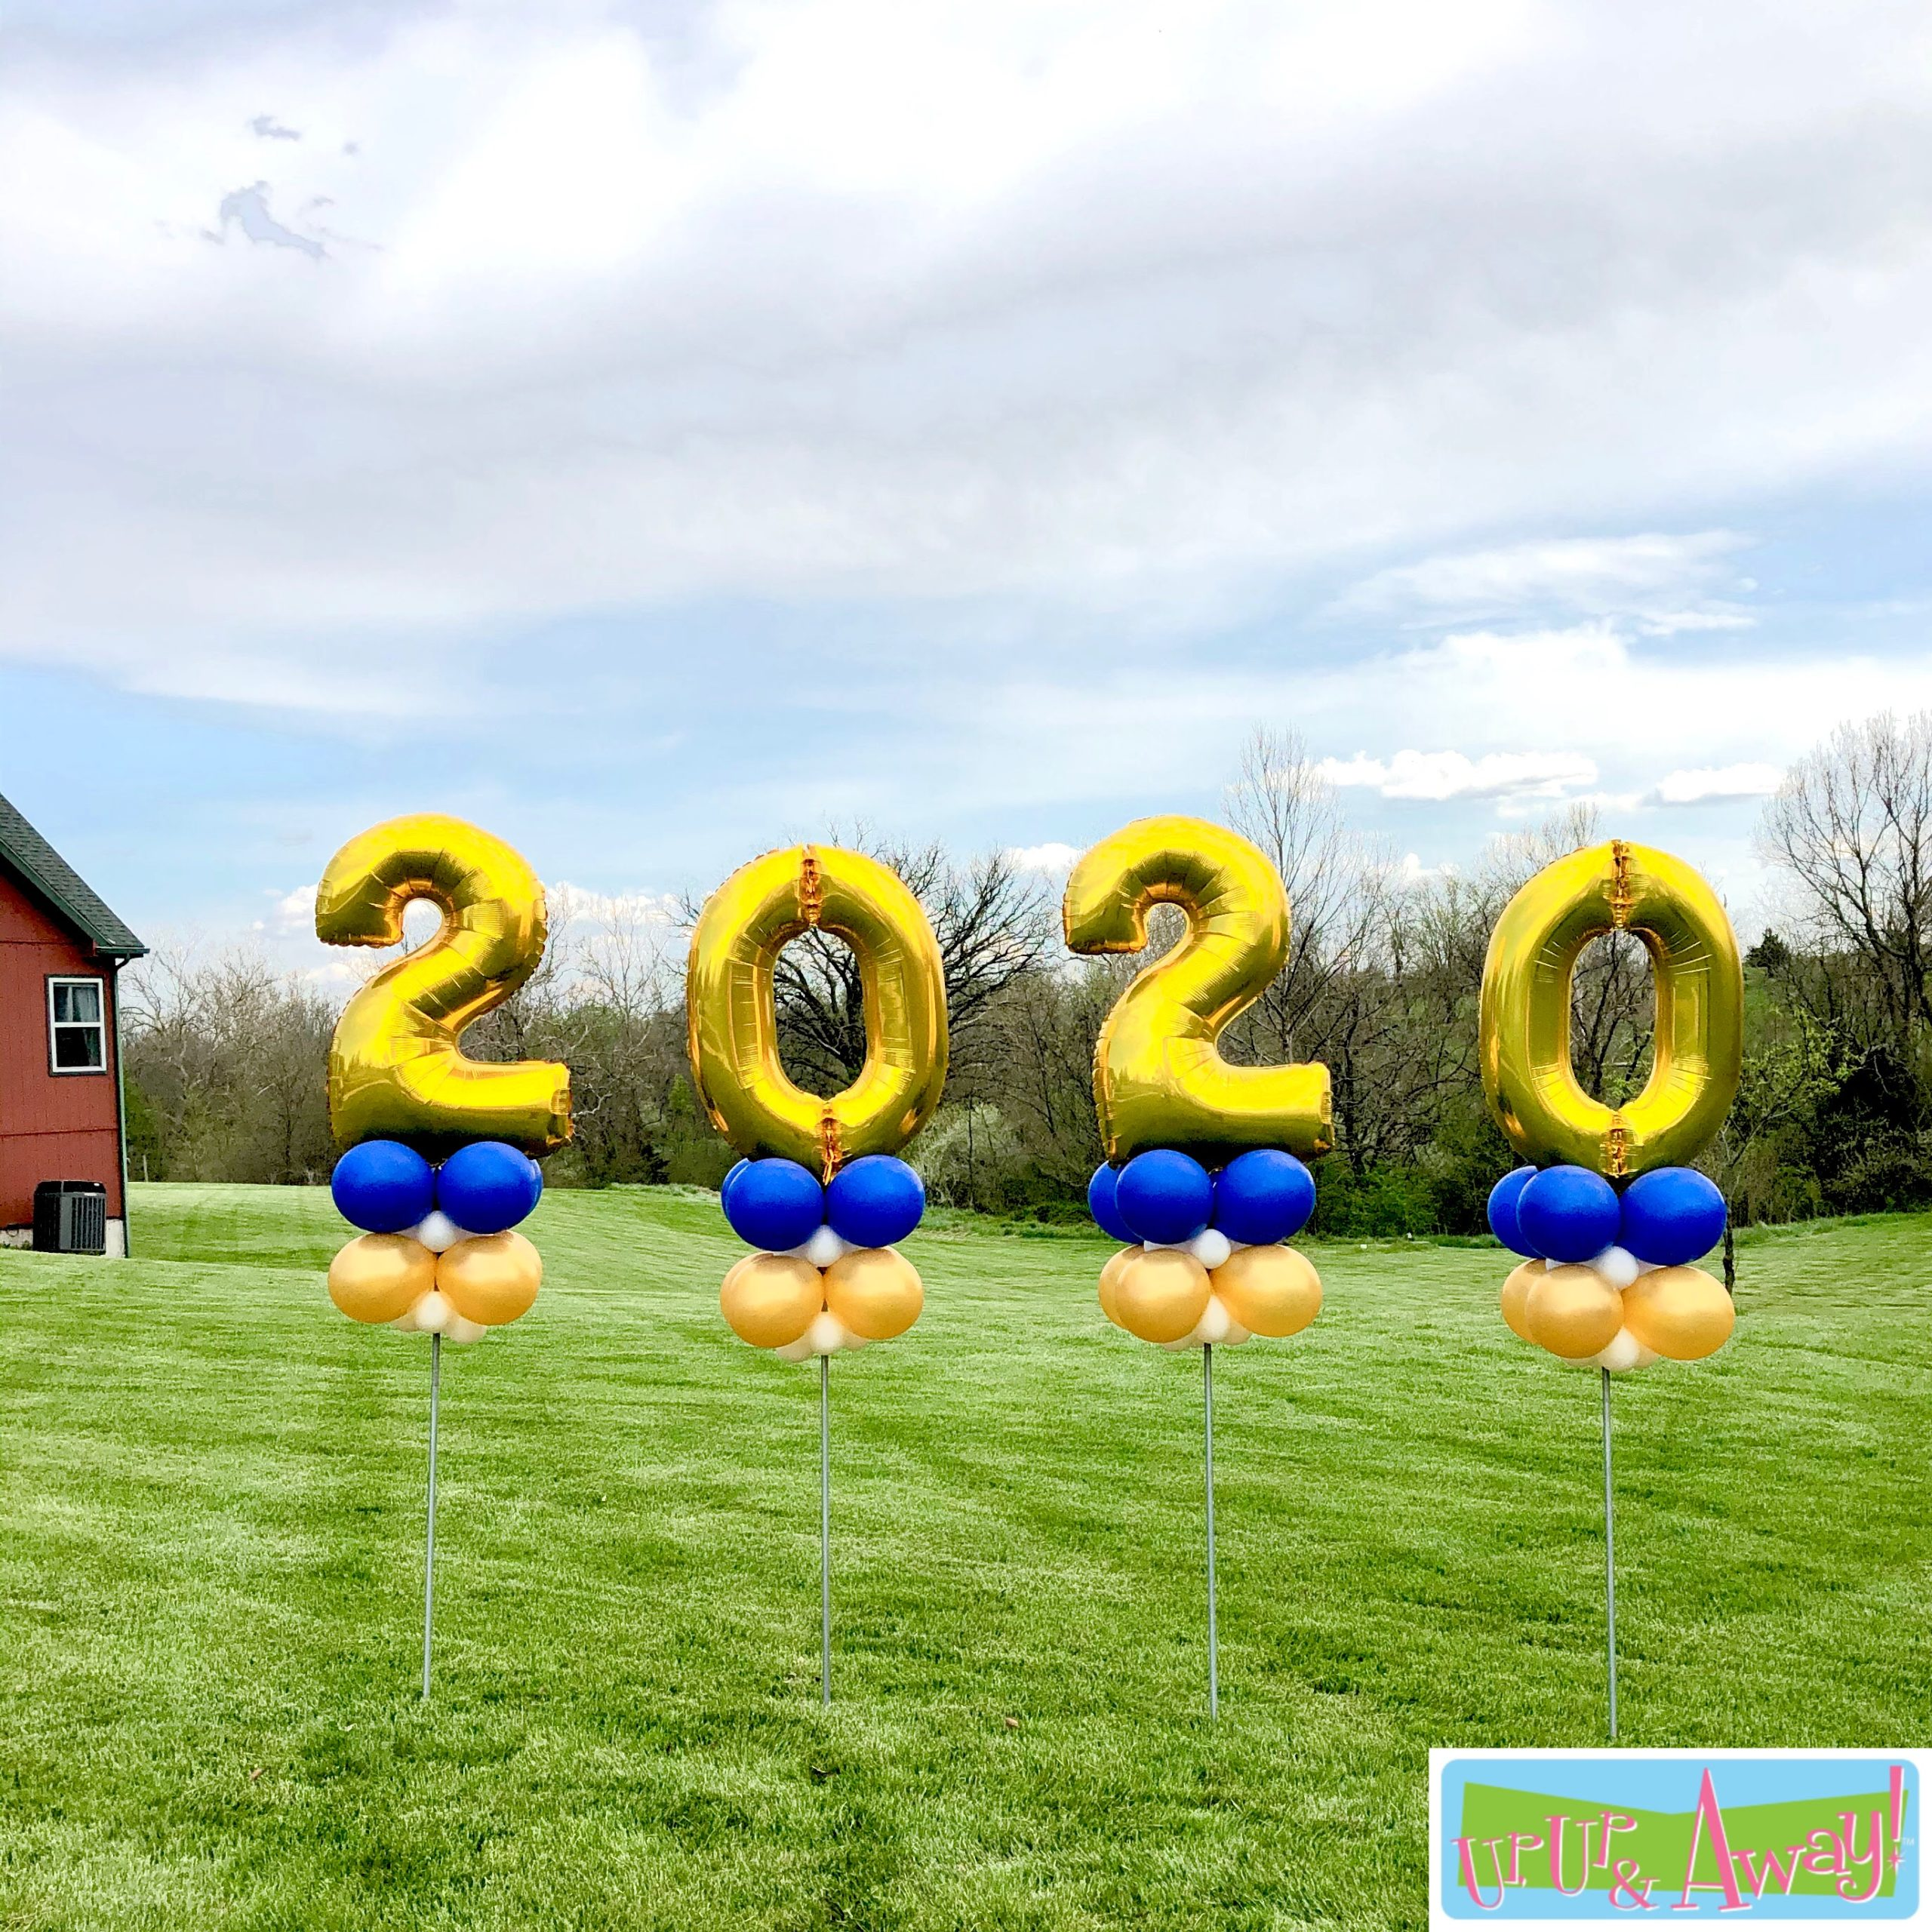 2020 Marquee | Up, Up & Away!